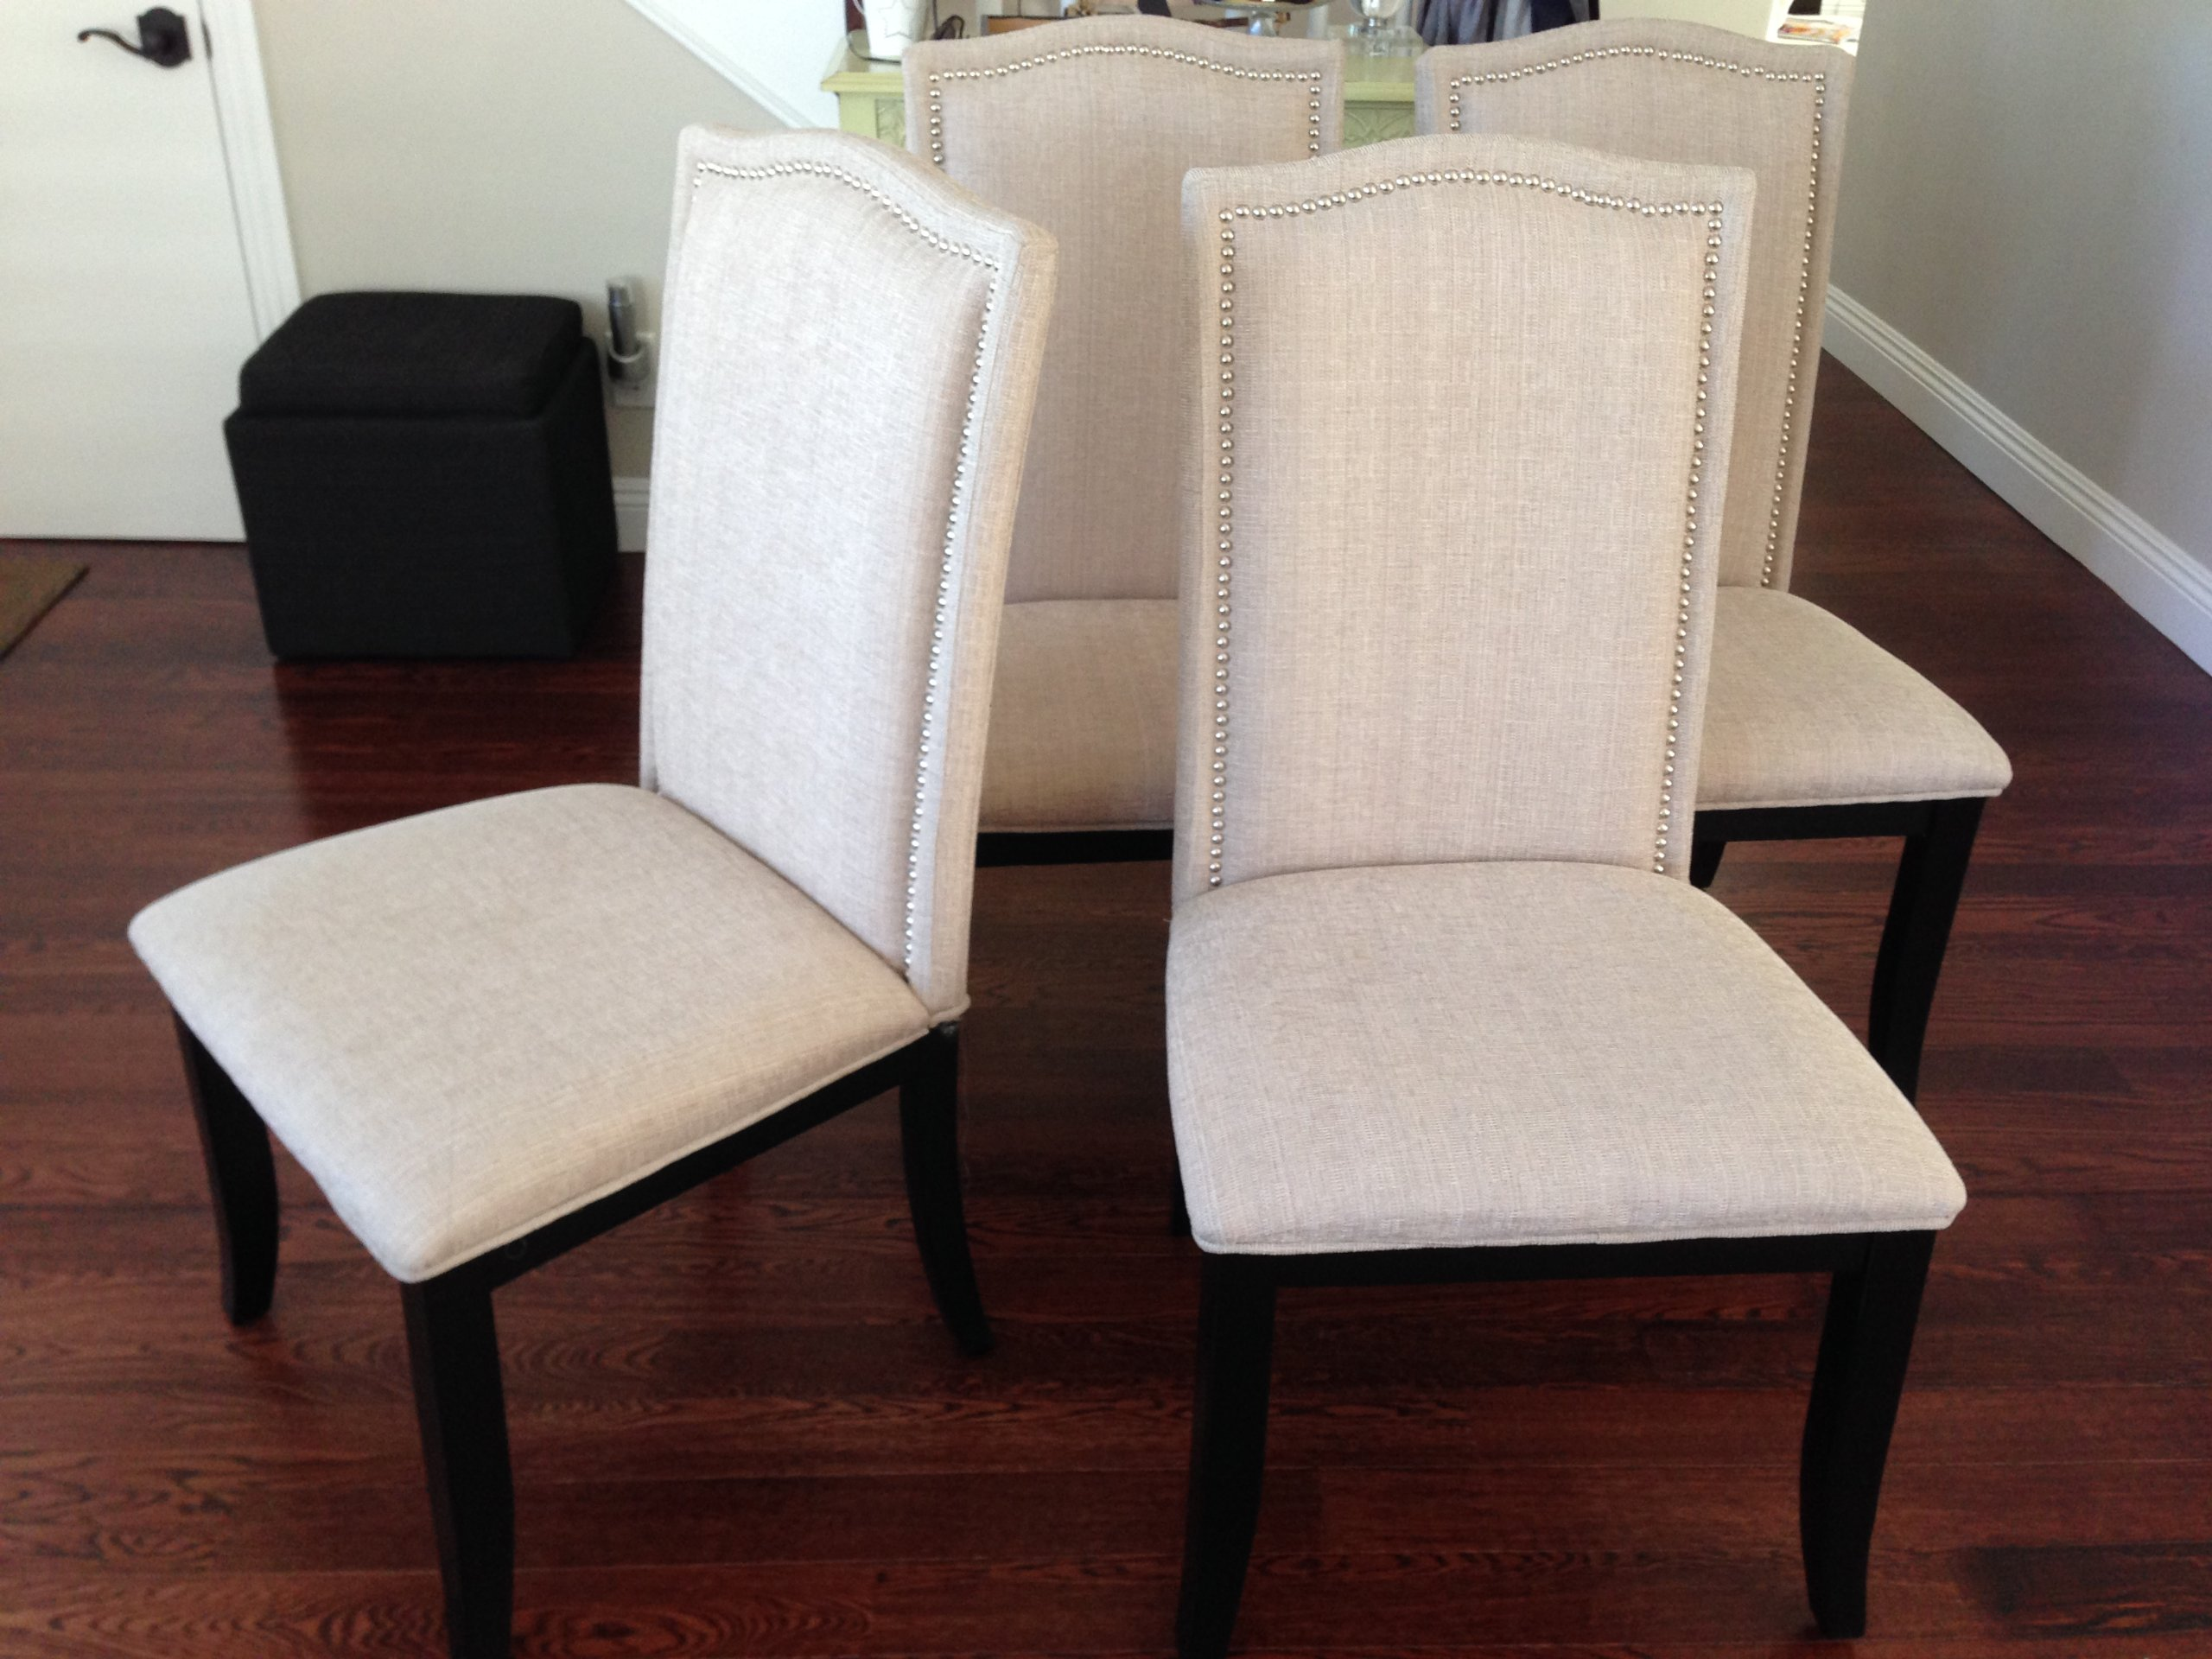 upholstered chair with nailhead trim accent and ottoman set of 2 beige fabric dining chairs